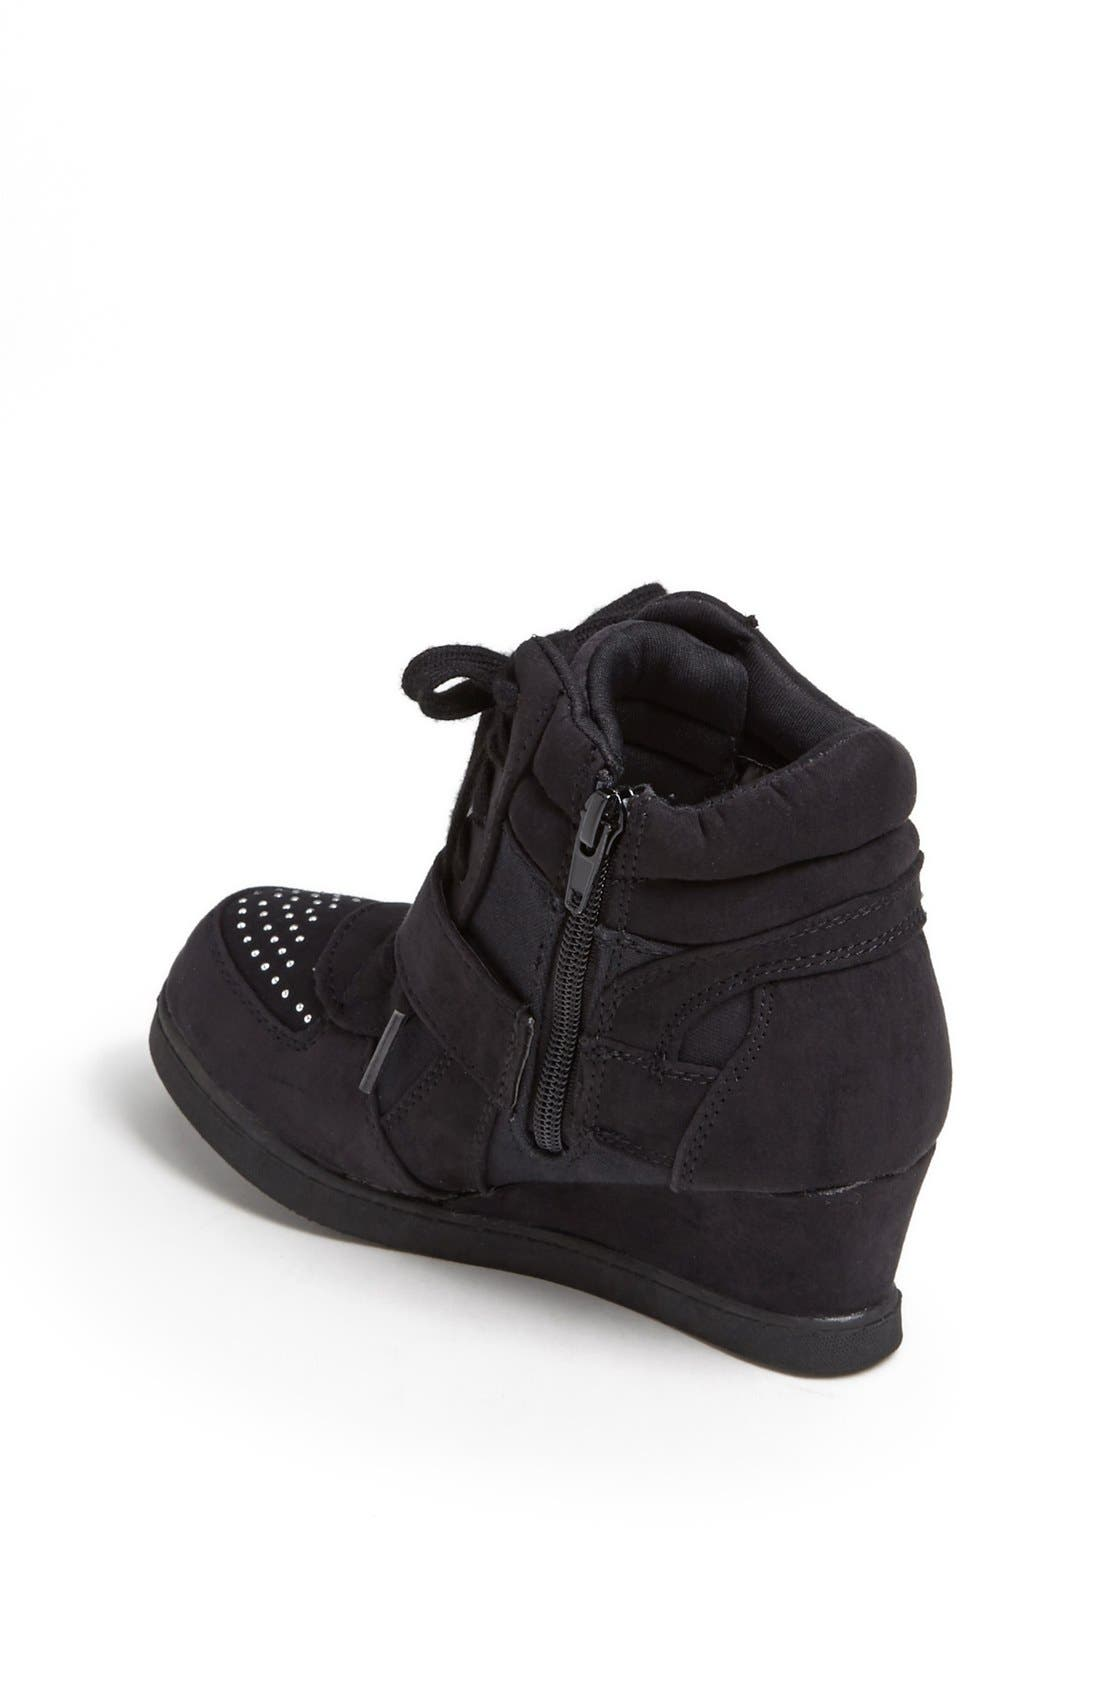 Alternate Image 2  - Steve Madden 'Glamm' Sneaker Wedge (Little Kid & Big Kid)